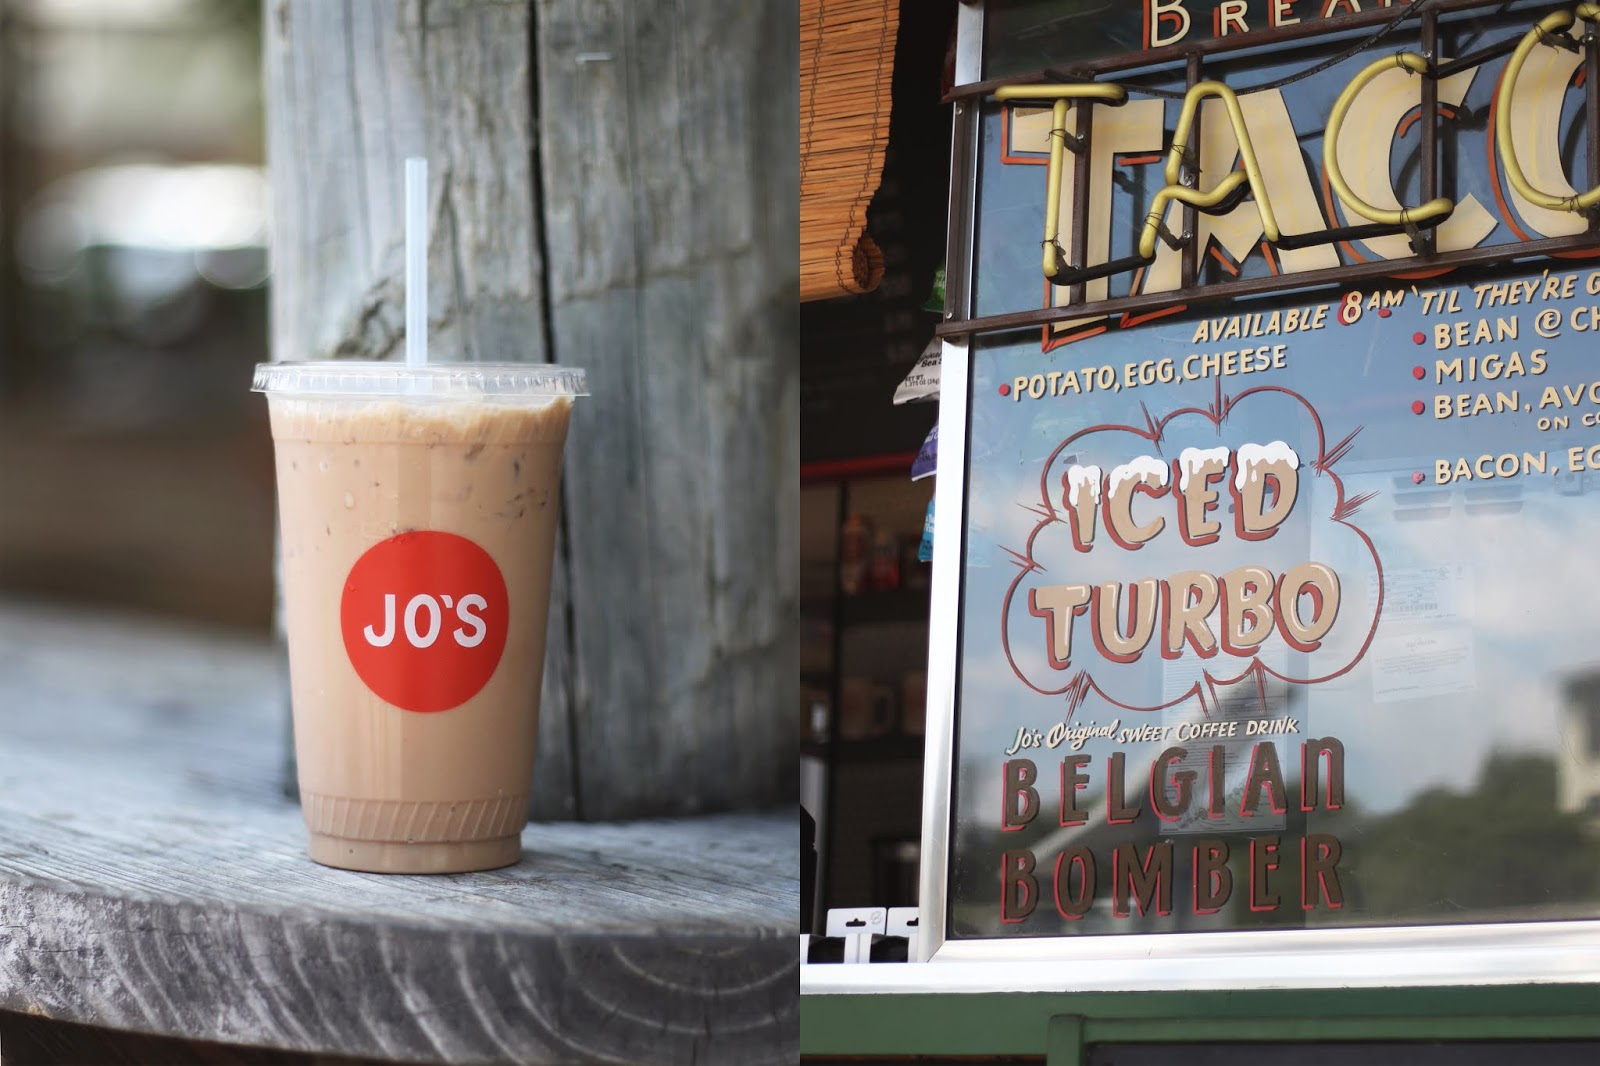 Jo's Coffee Austin, Iced Coffee, Cozy Coffee Shop, Coffee Shops Vibe